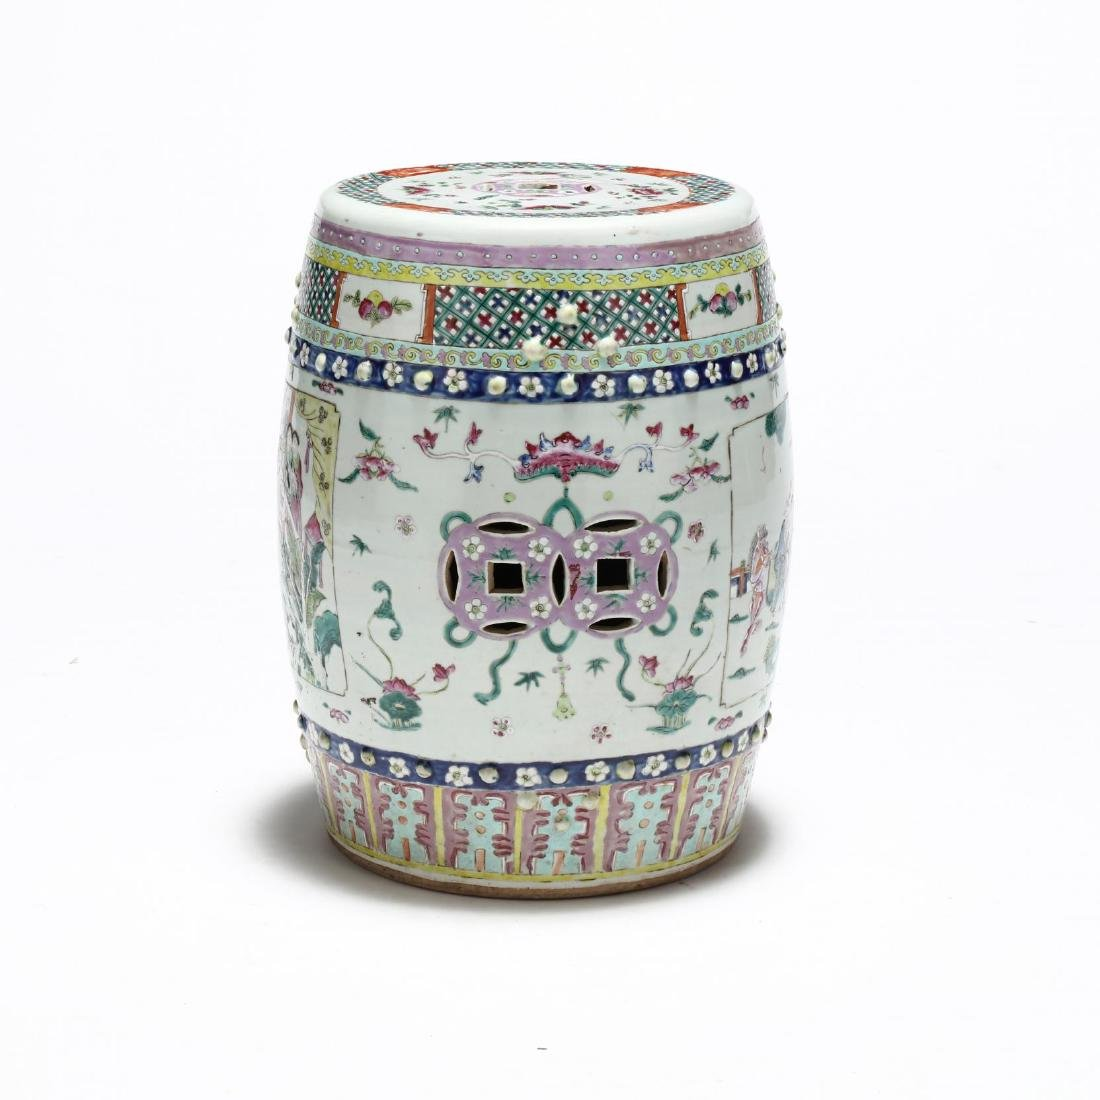 A Chinese Famille Rose Drum Garden Stool - 3